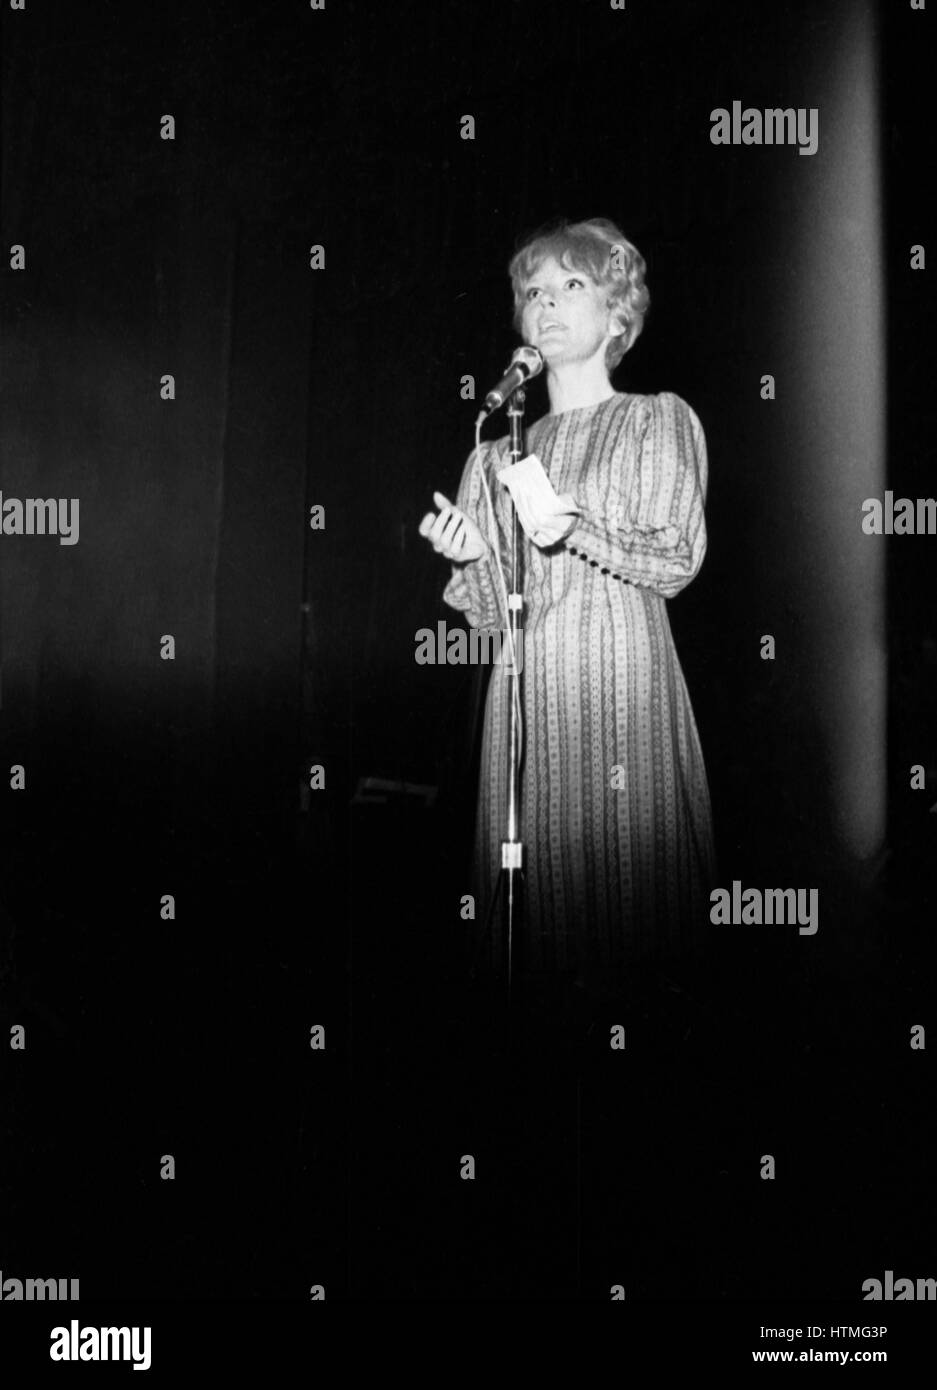 Petula Clark performing at the Paris Olympia Hall in April 1965. - Stock Image